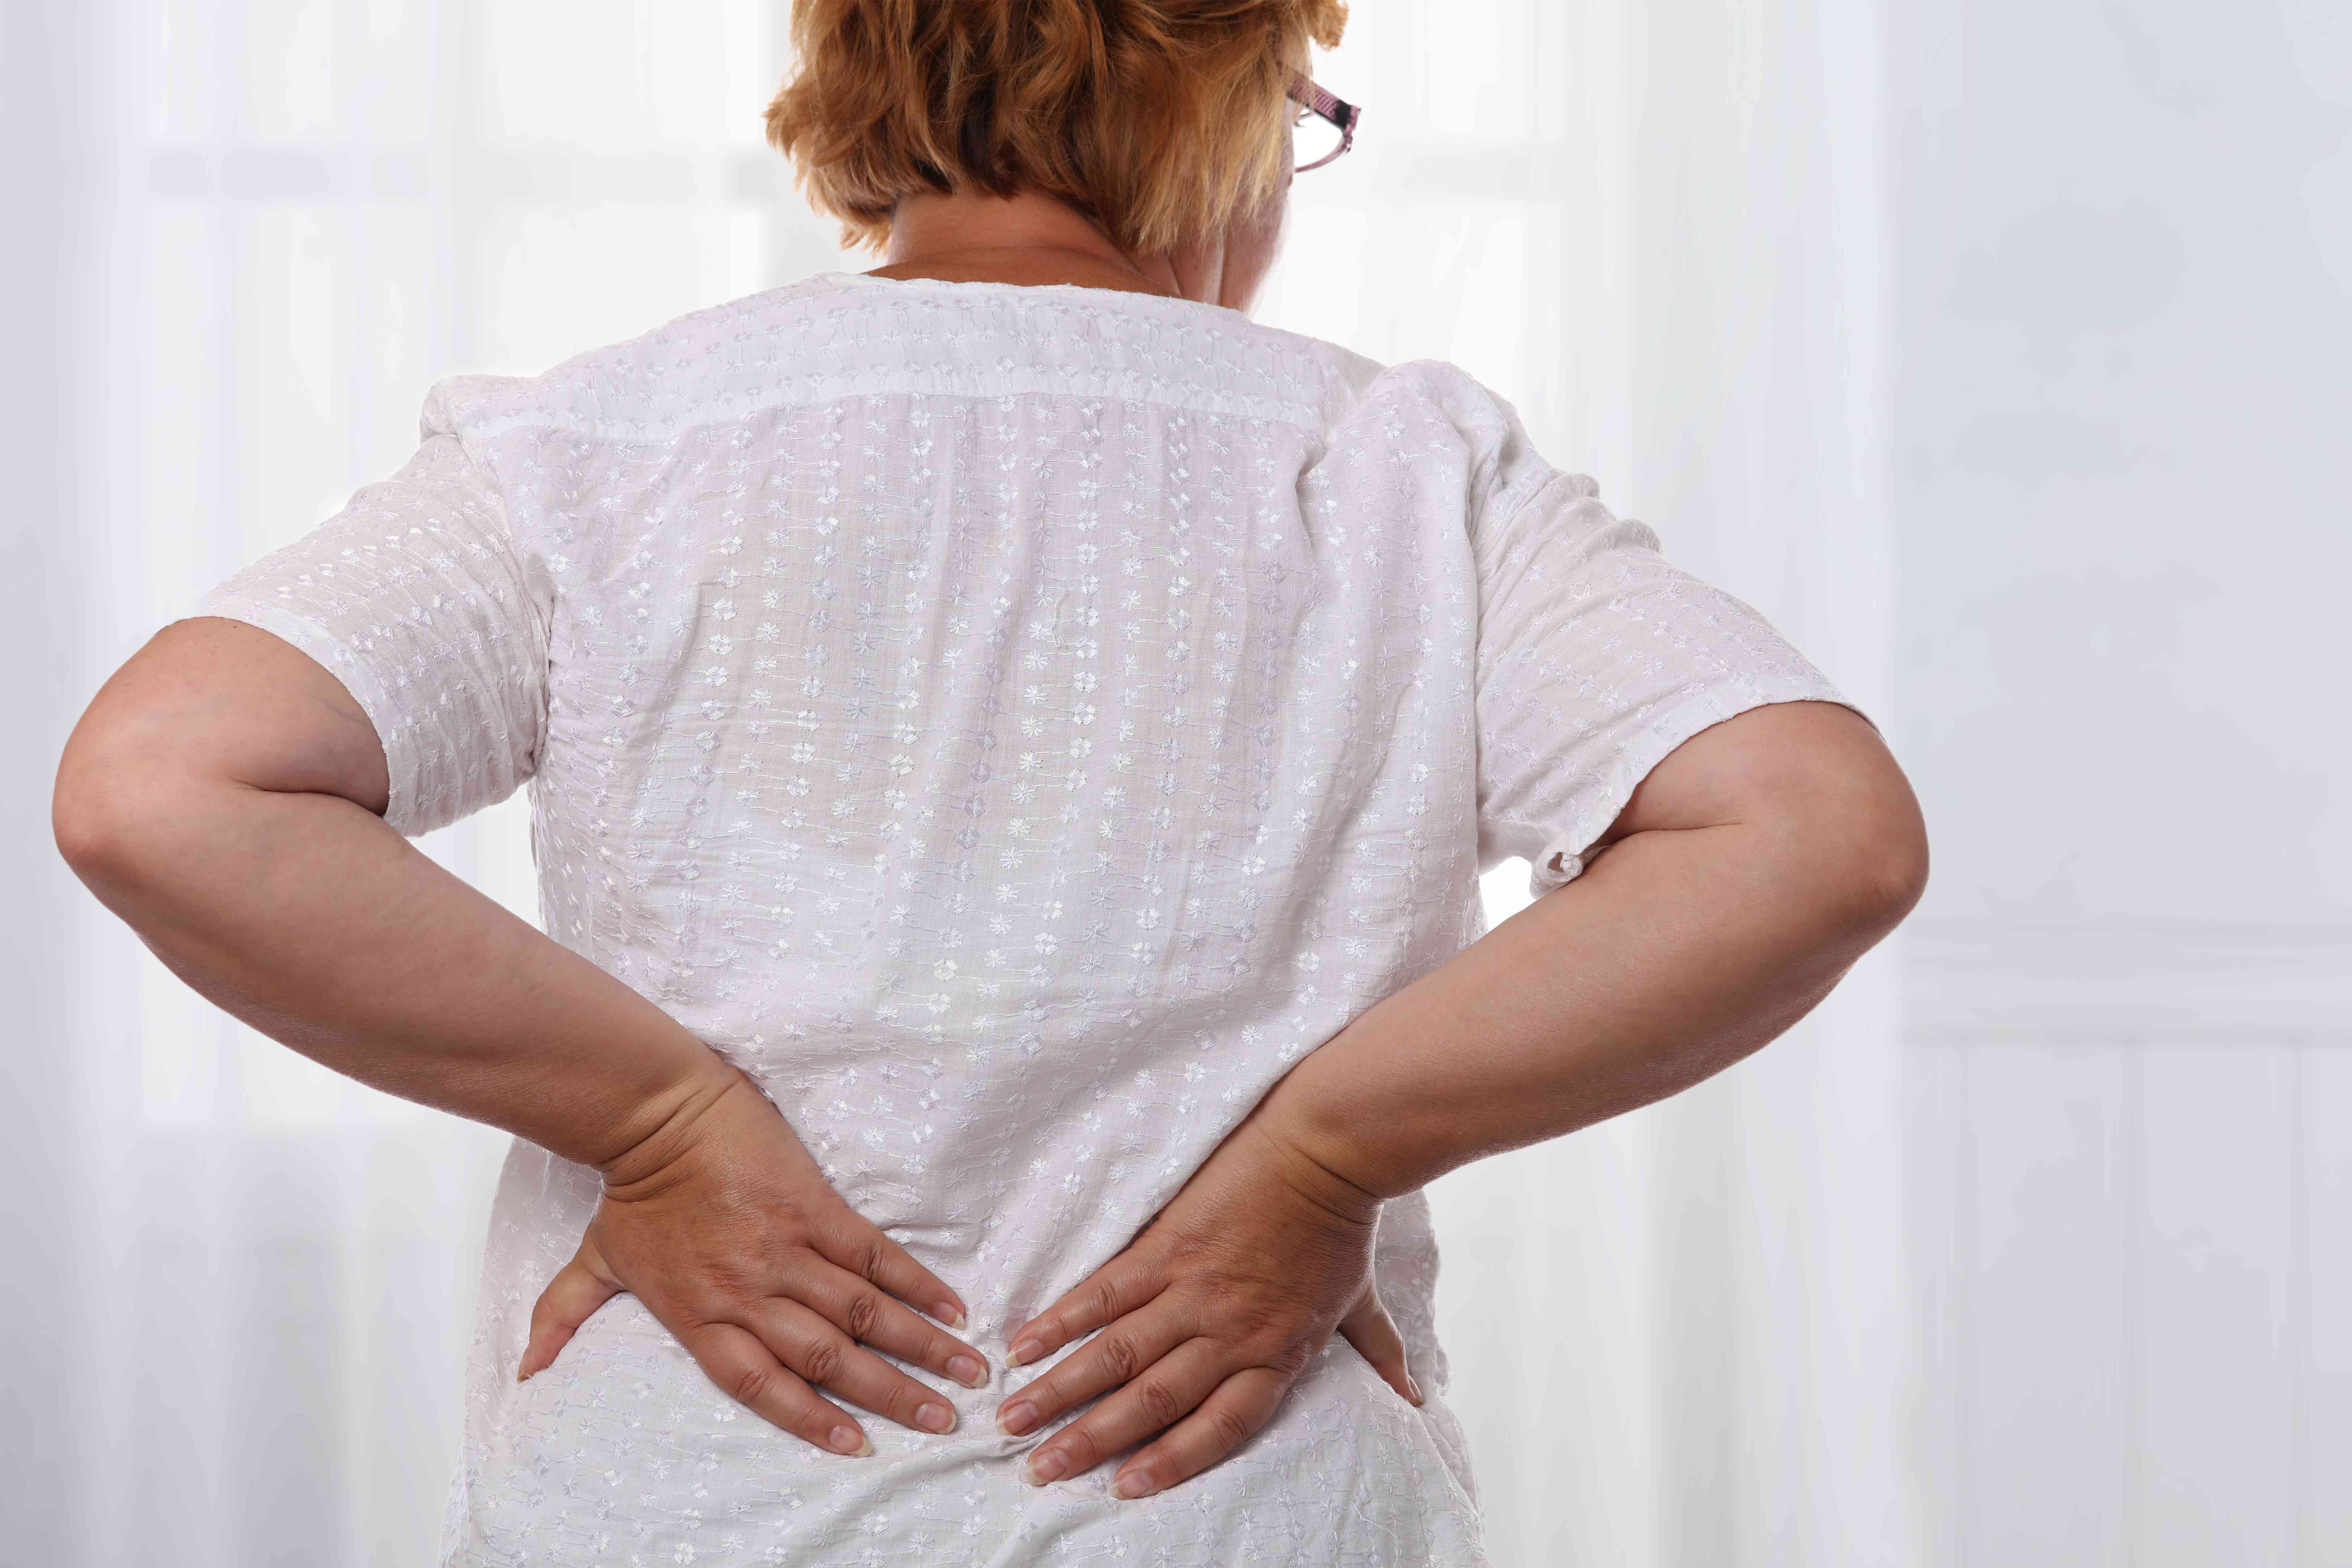 Senior woman suffering from low back pain. Chiropractic, osteopathy, Physiotherapy. Alternative medicine, pain relief concept.